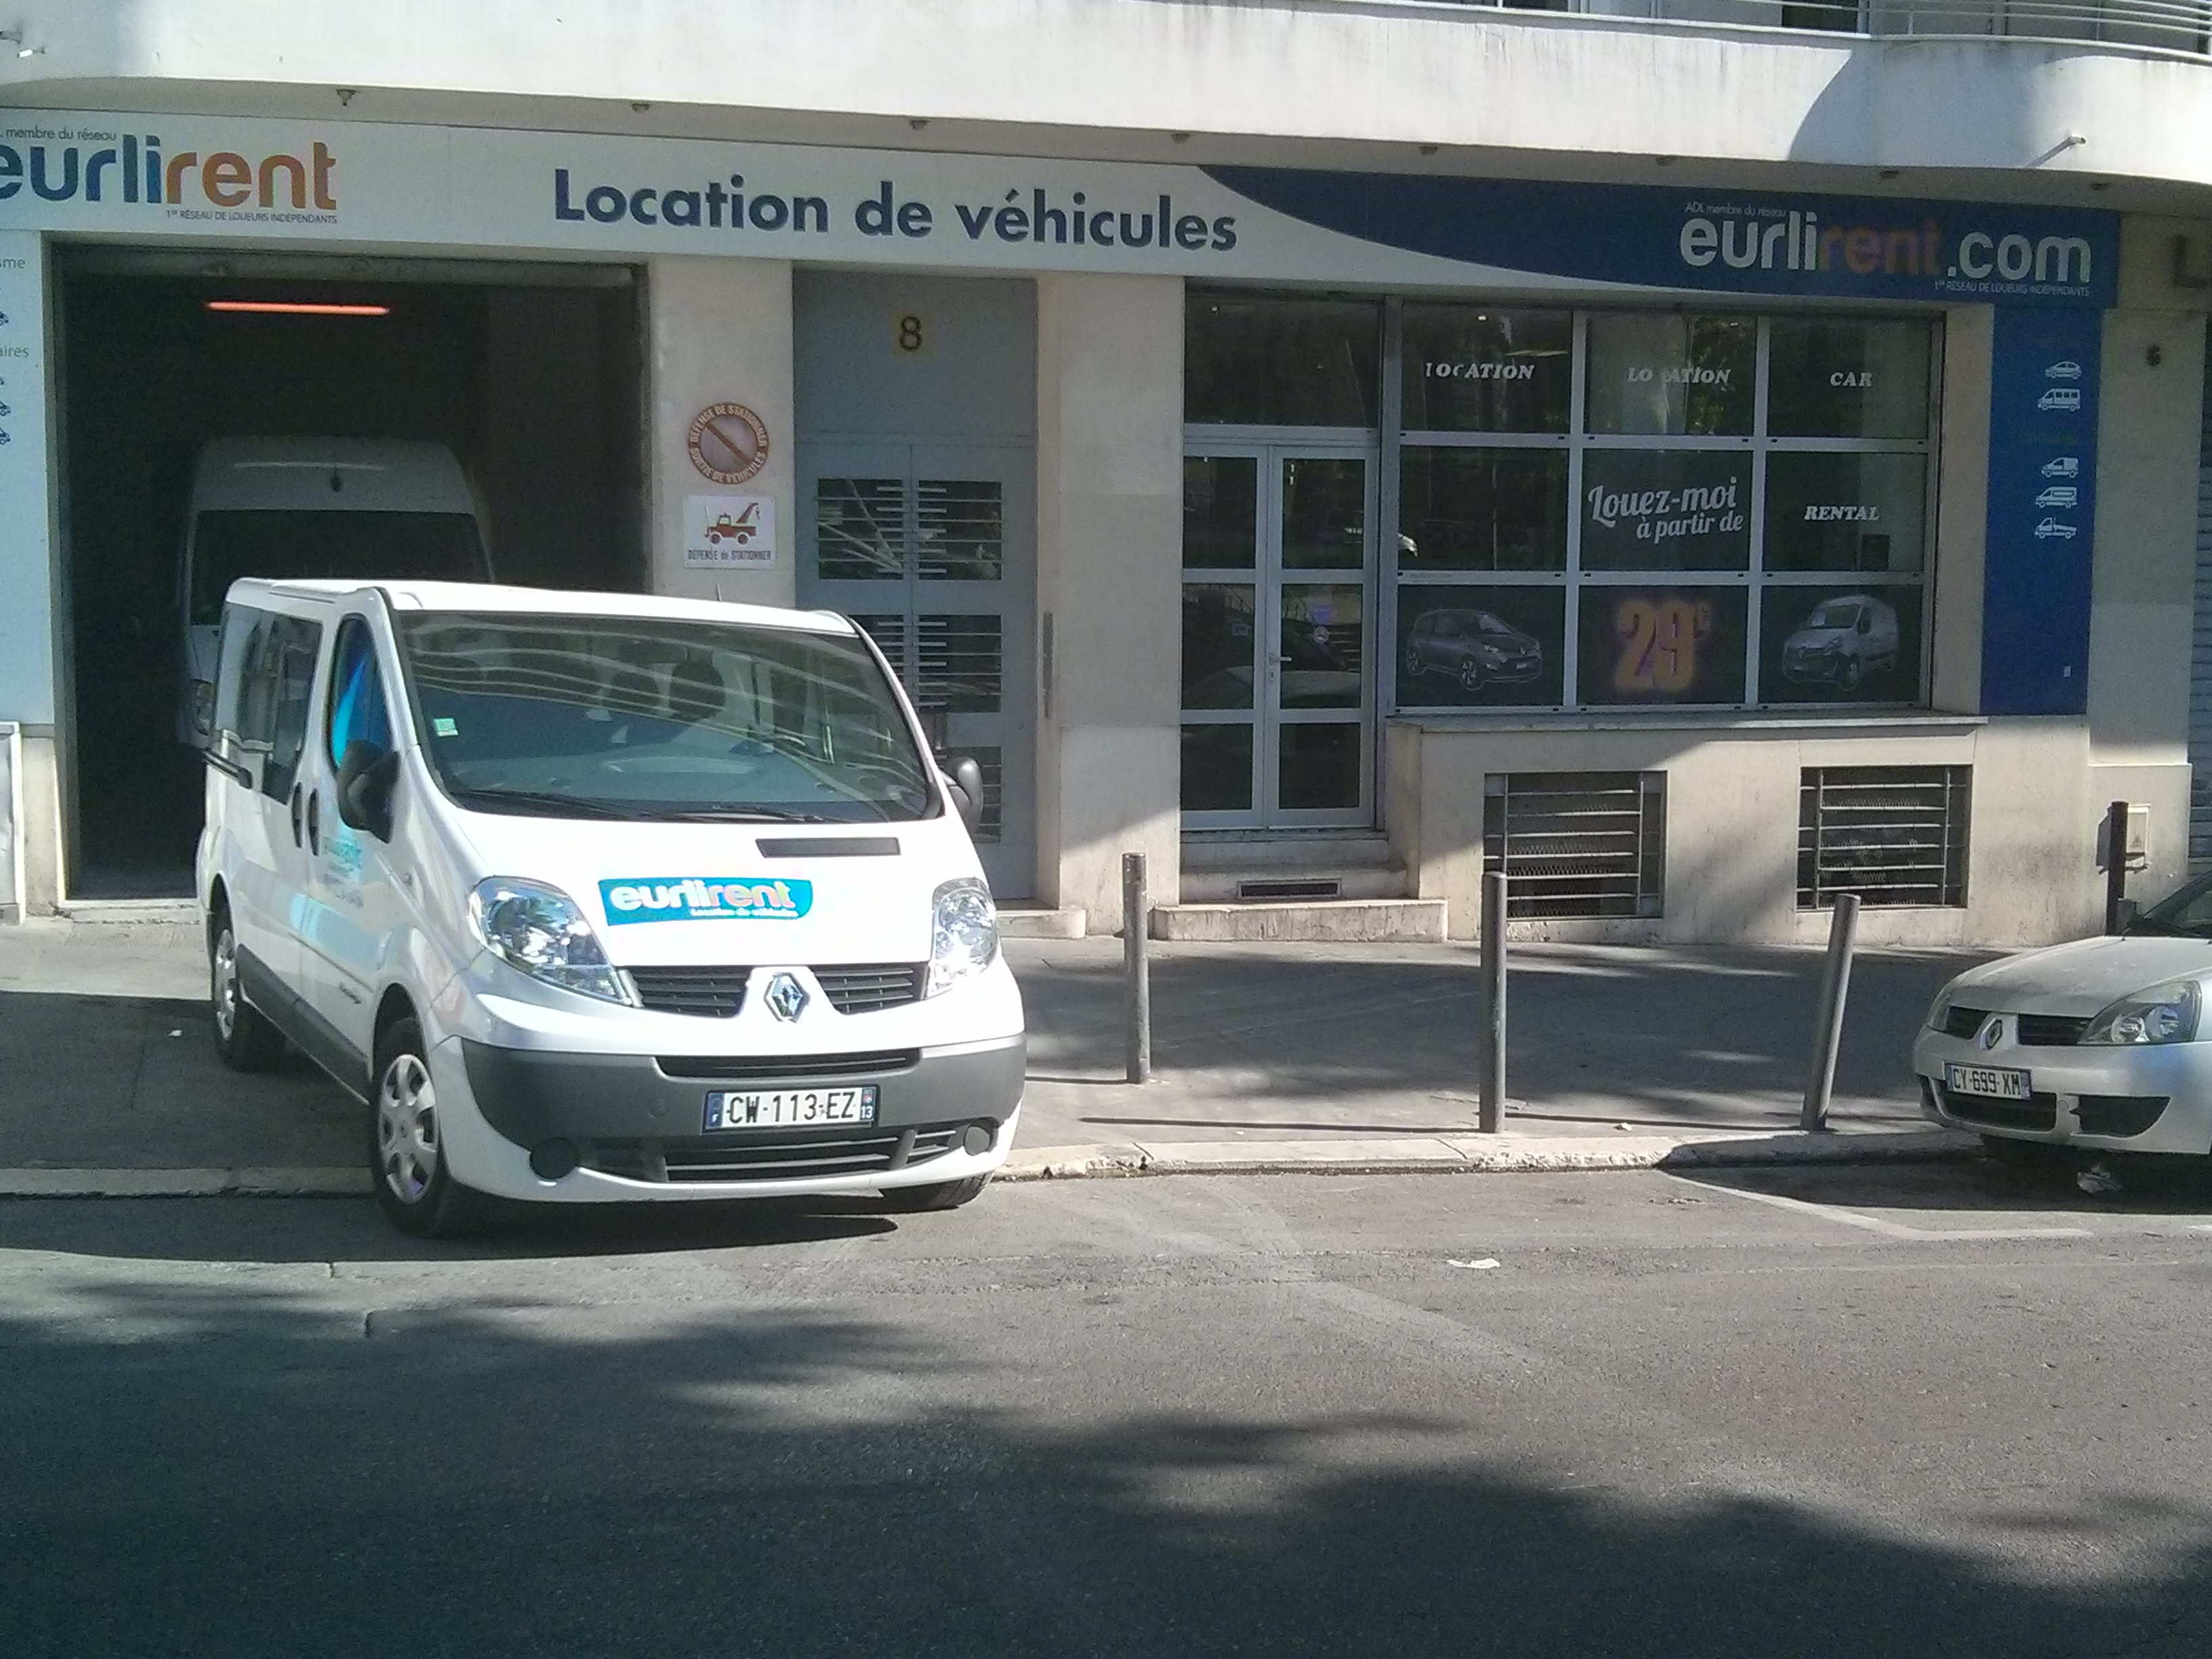 Location de voiture marseille eurlirent - Location camion porte voiture super u ...